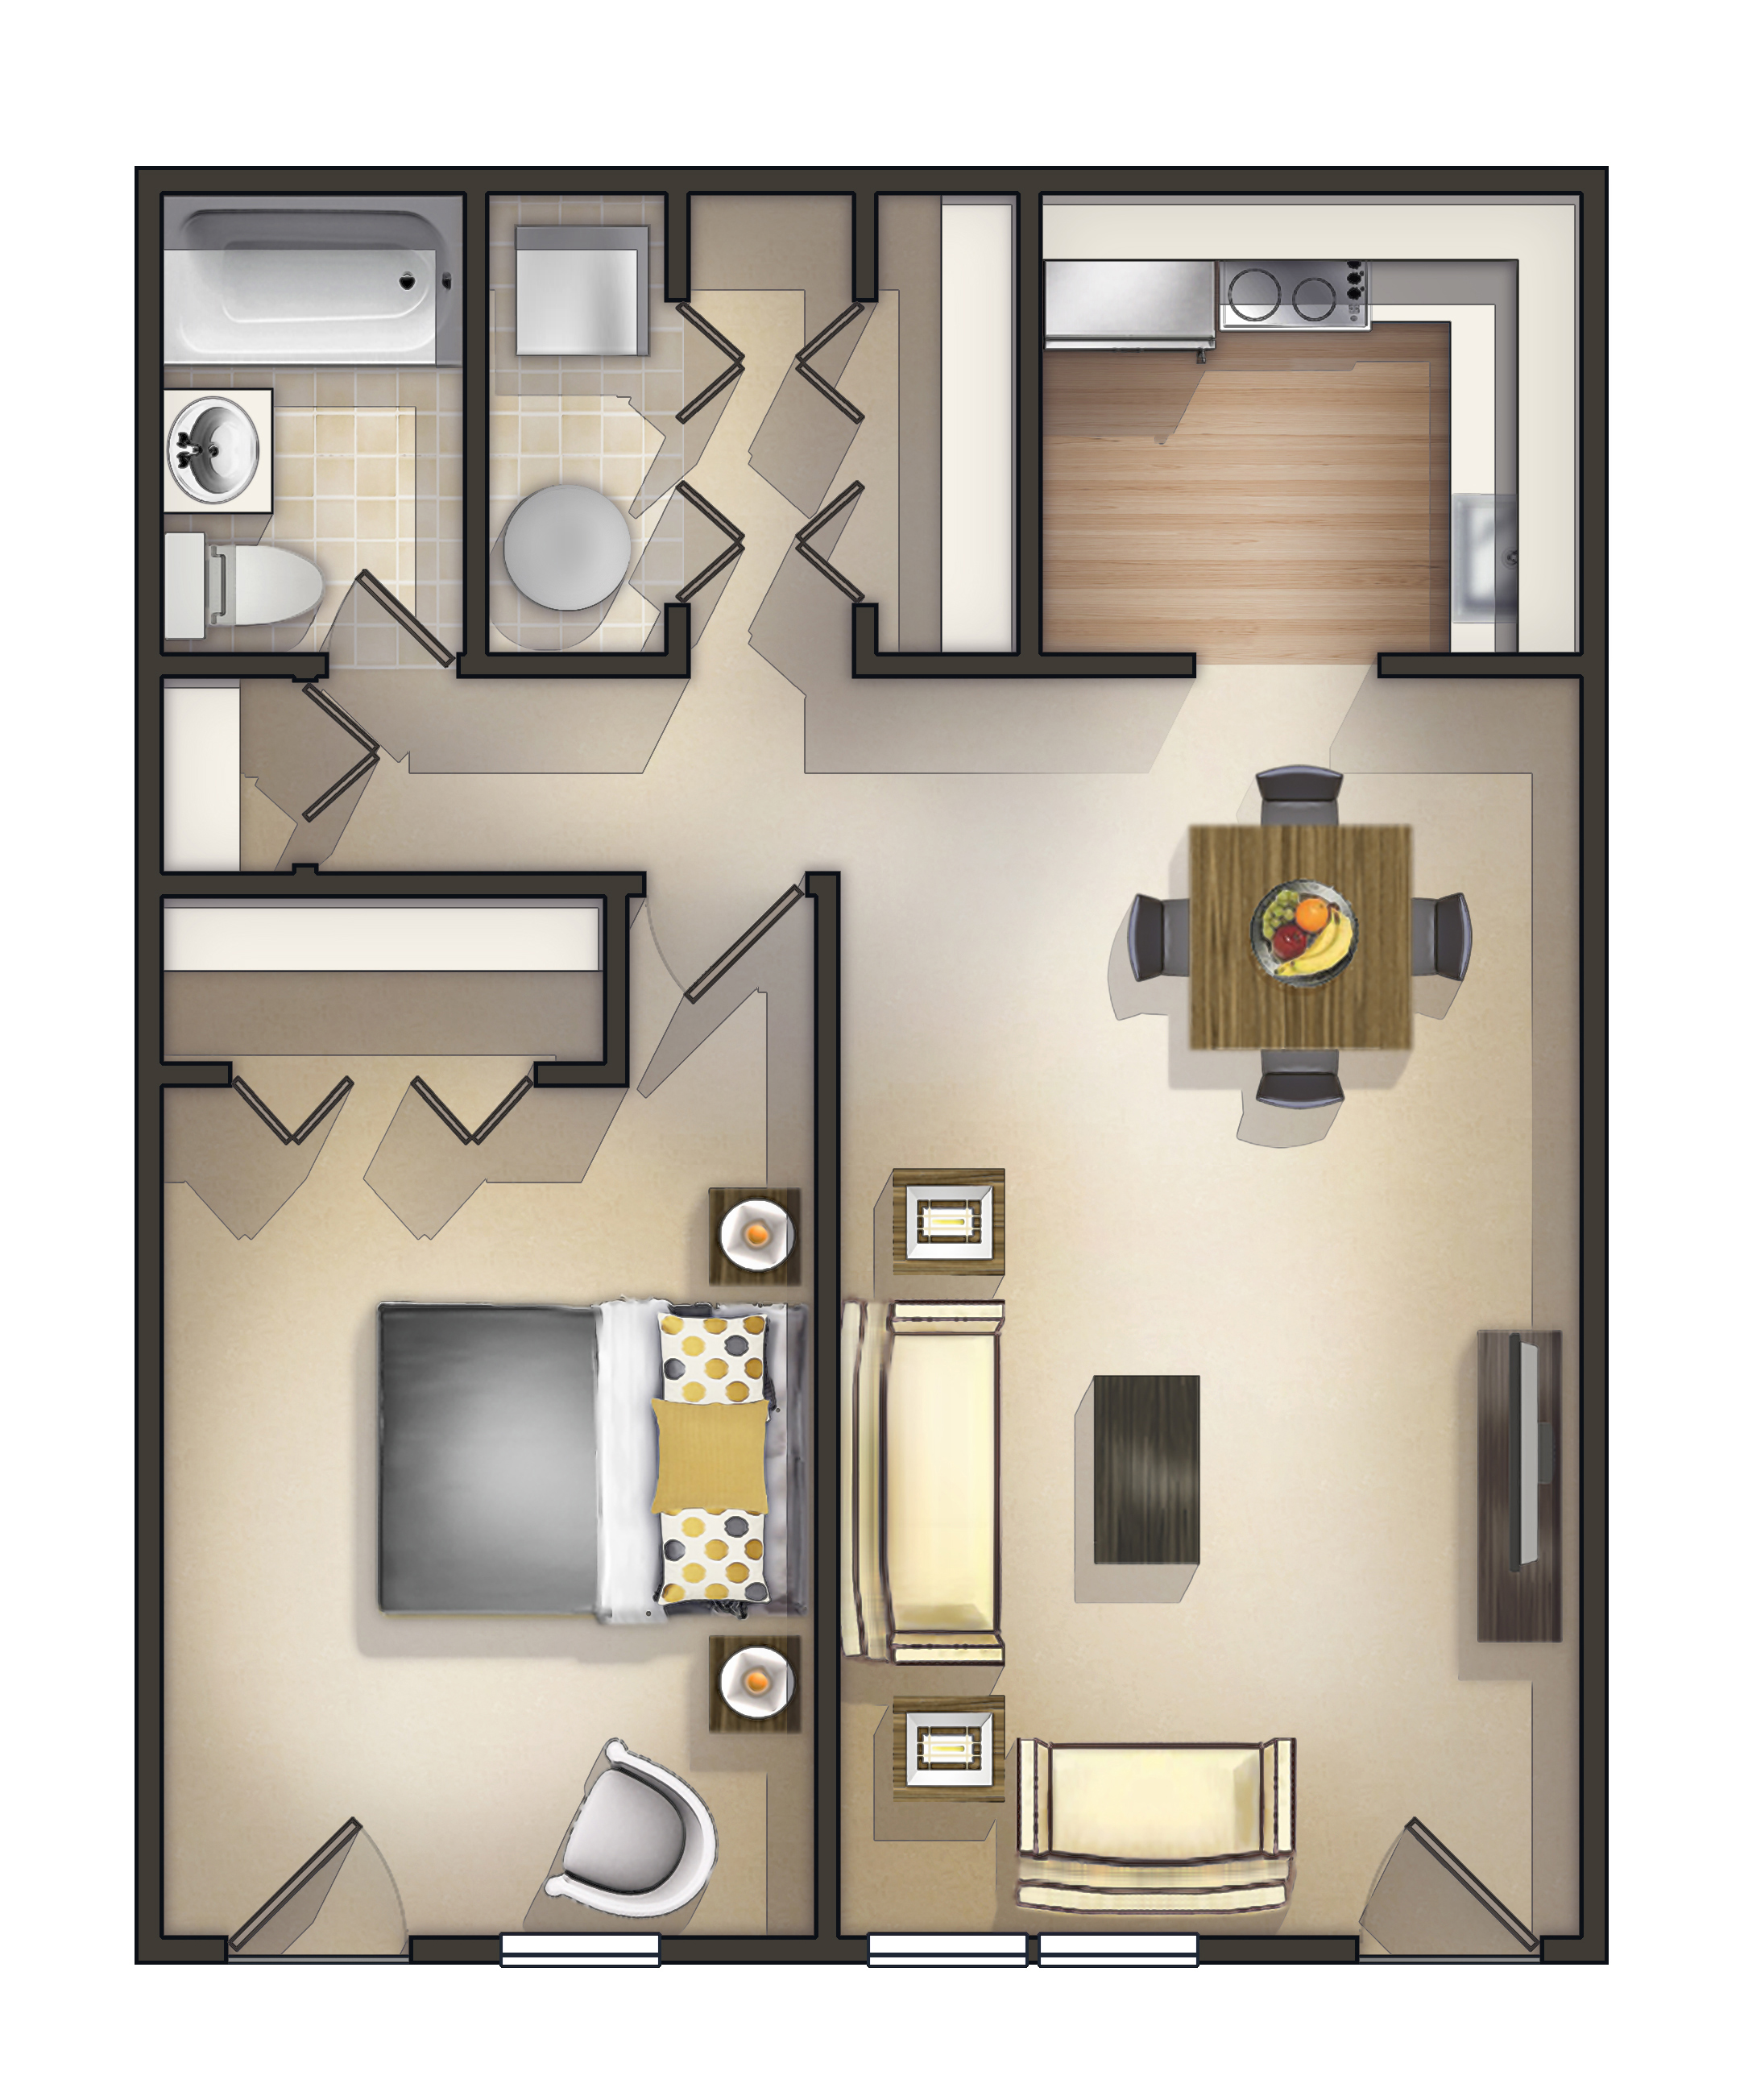 1 Bedroom House Layout